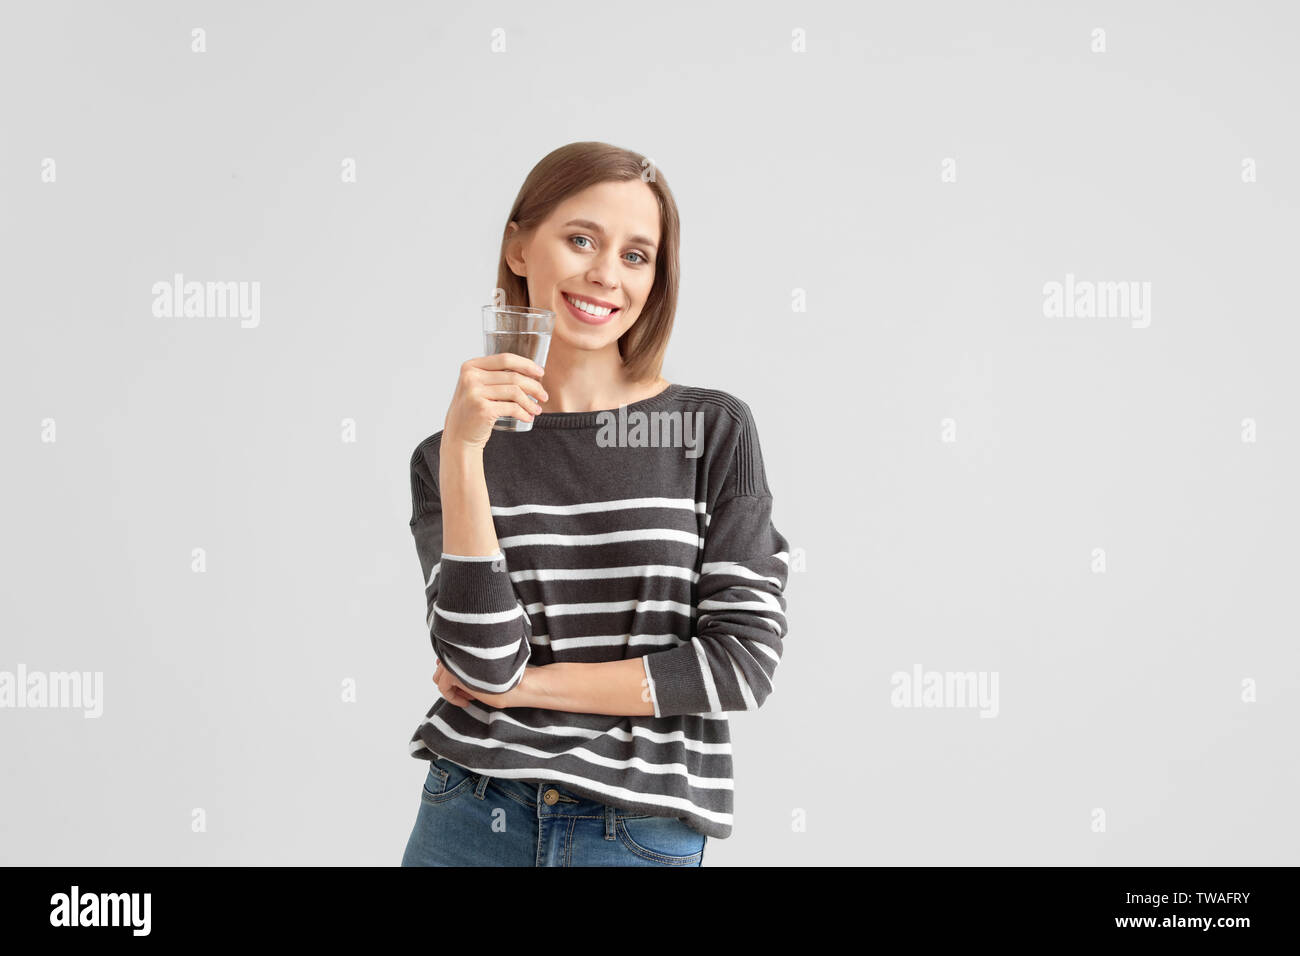 Beautiful young woman with glass of water on light background - Stock Image